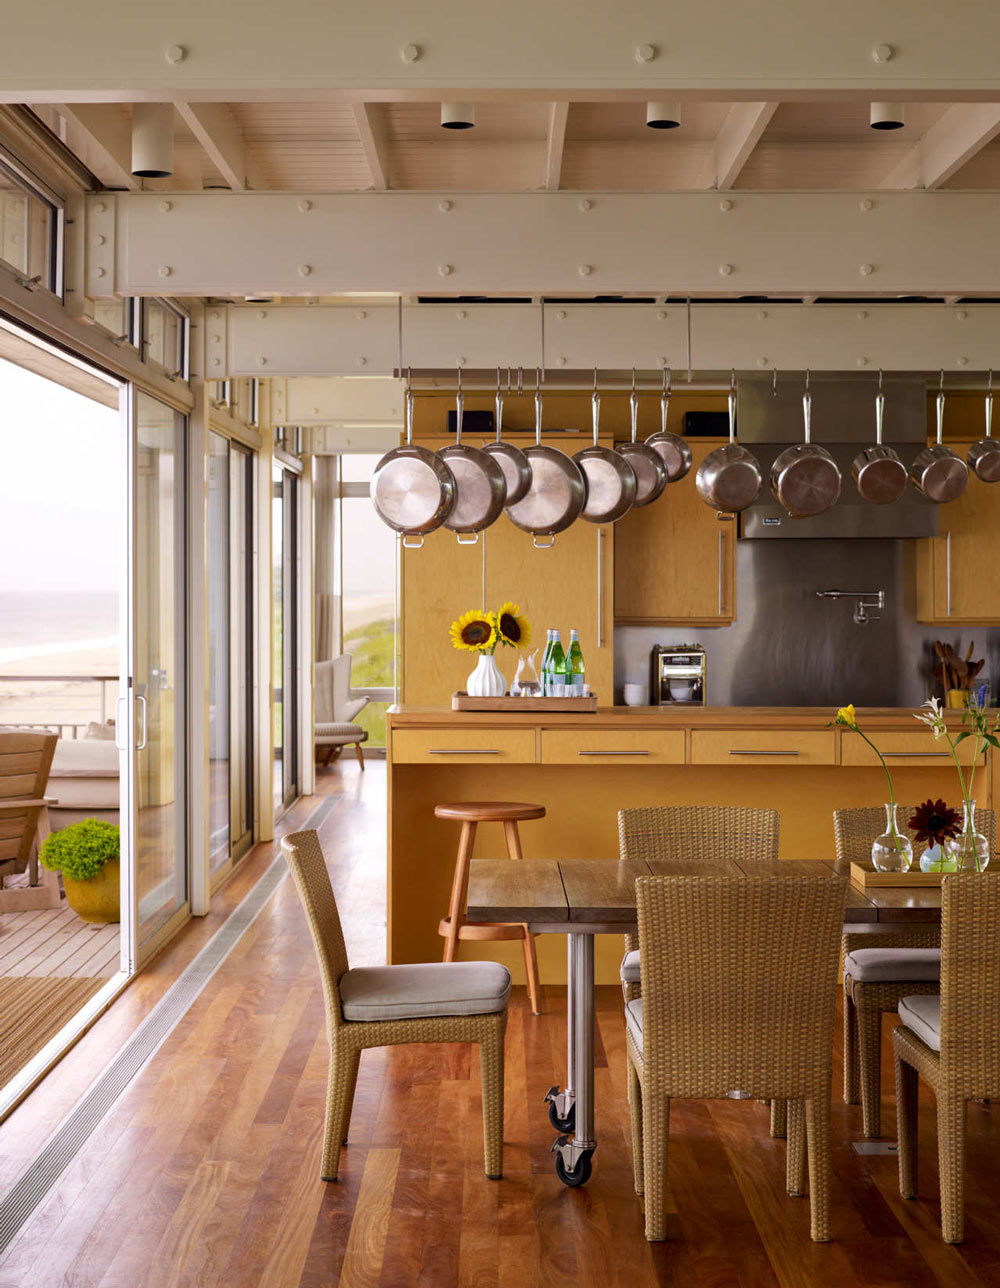 Kitchen, Dining, Patio Doors, Surfside House in Bridgehampton, New York by Stelle Architects